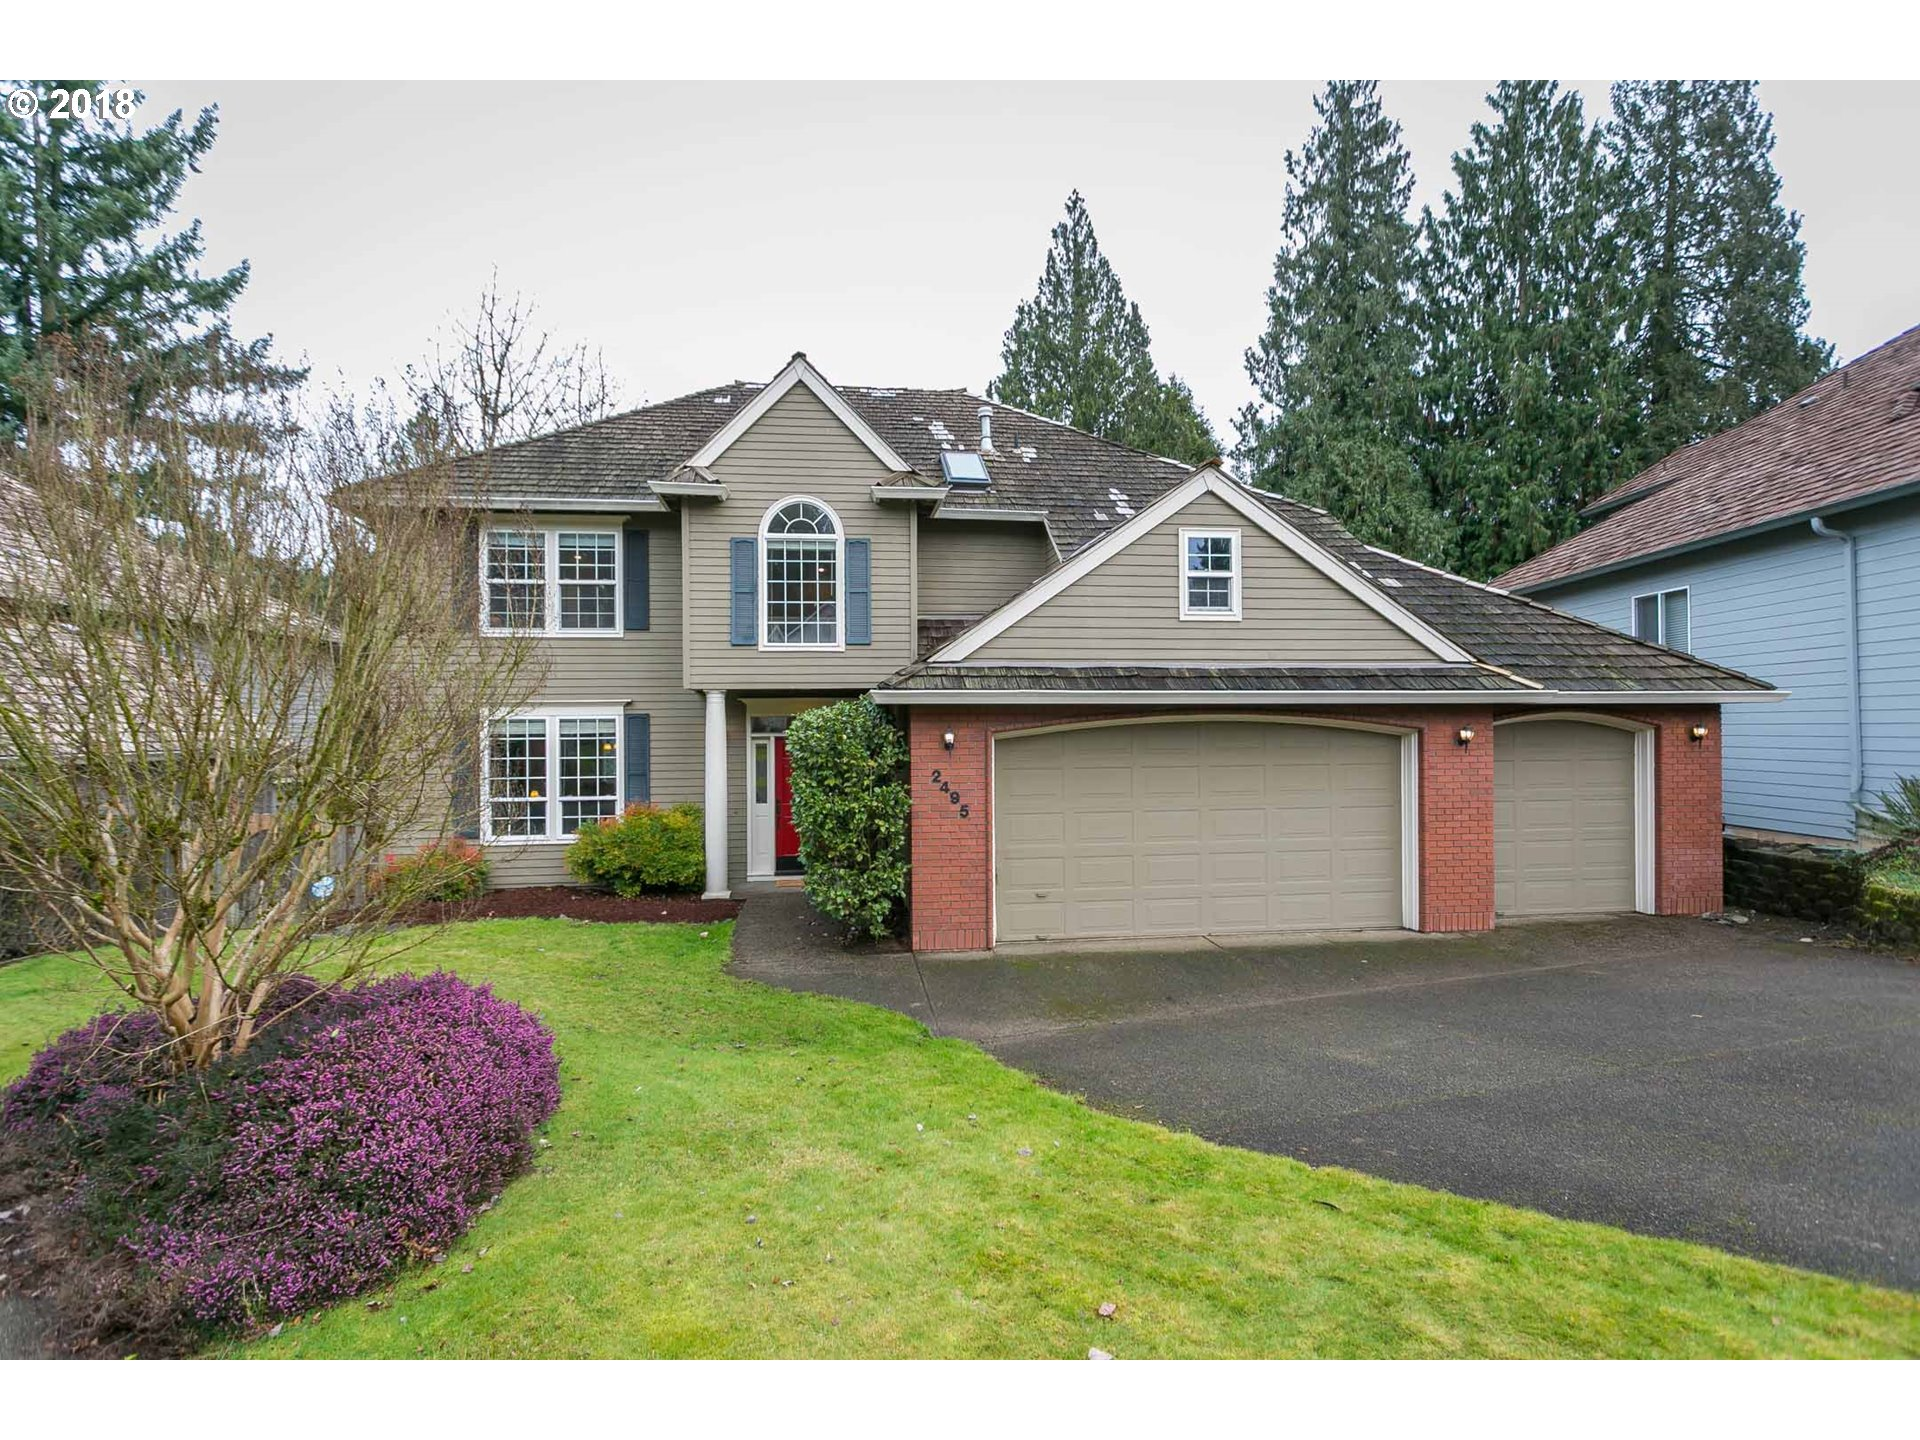 2495 MICHAEL CT, West Linn, OR 97068